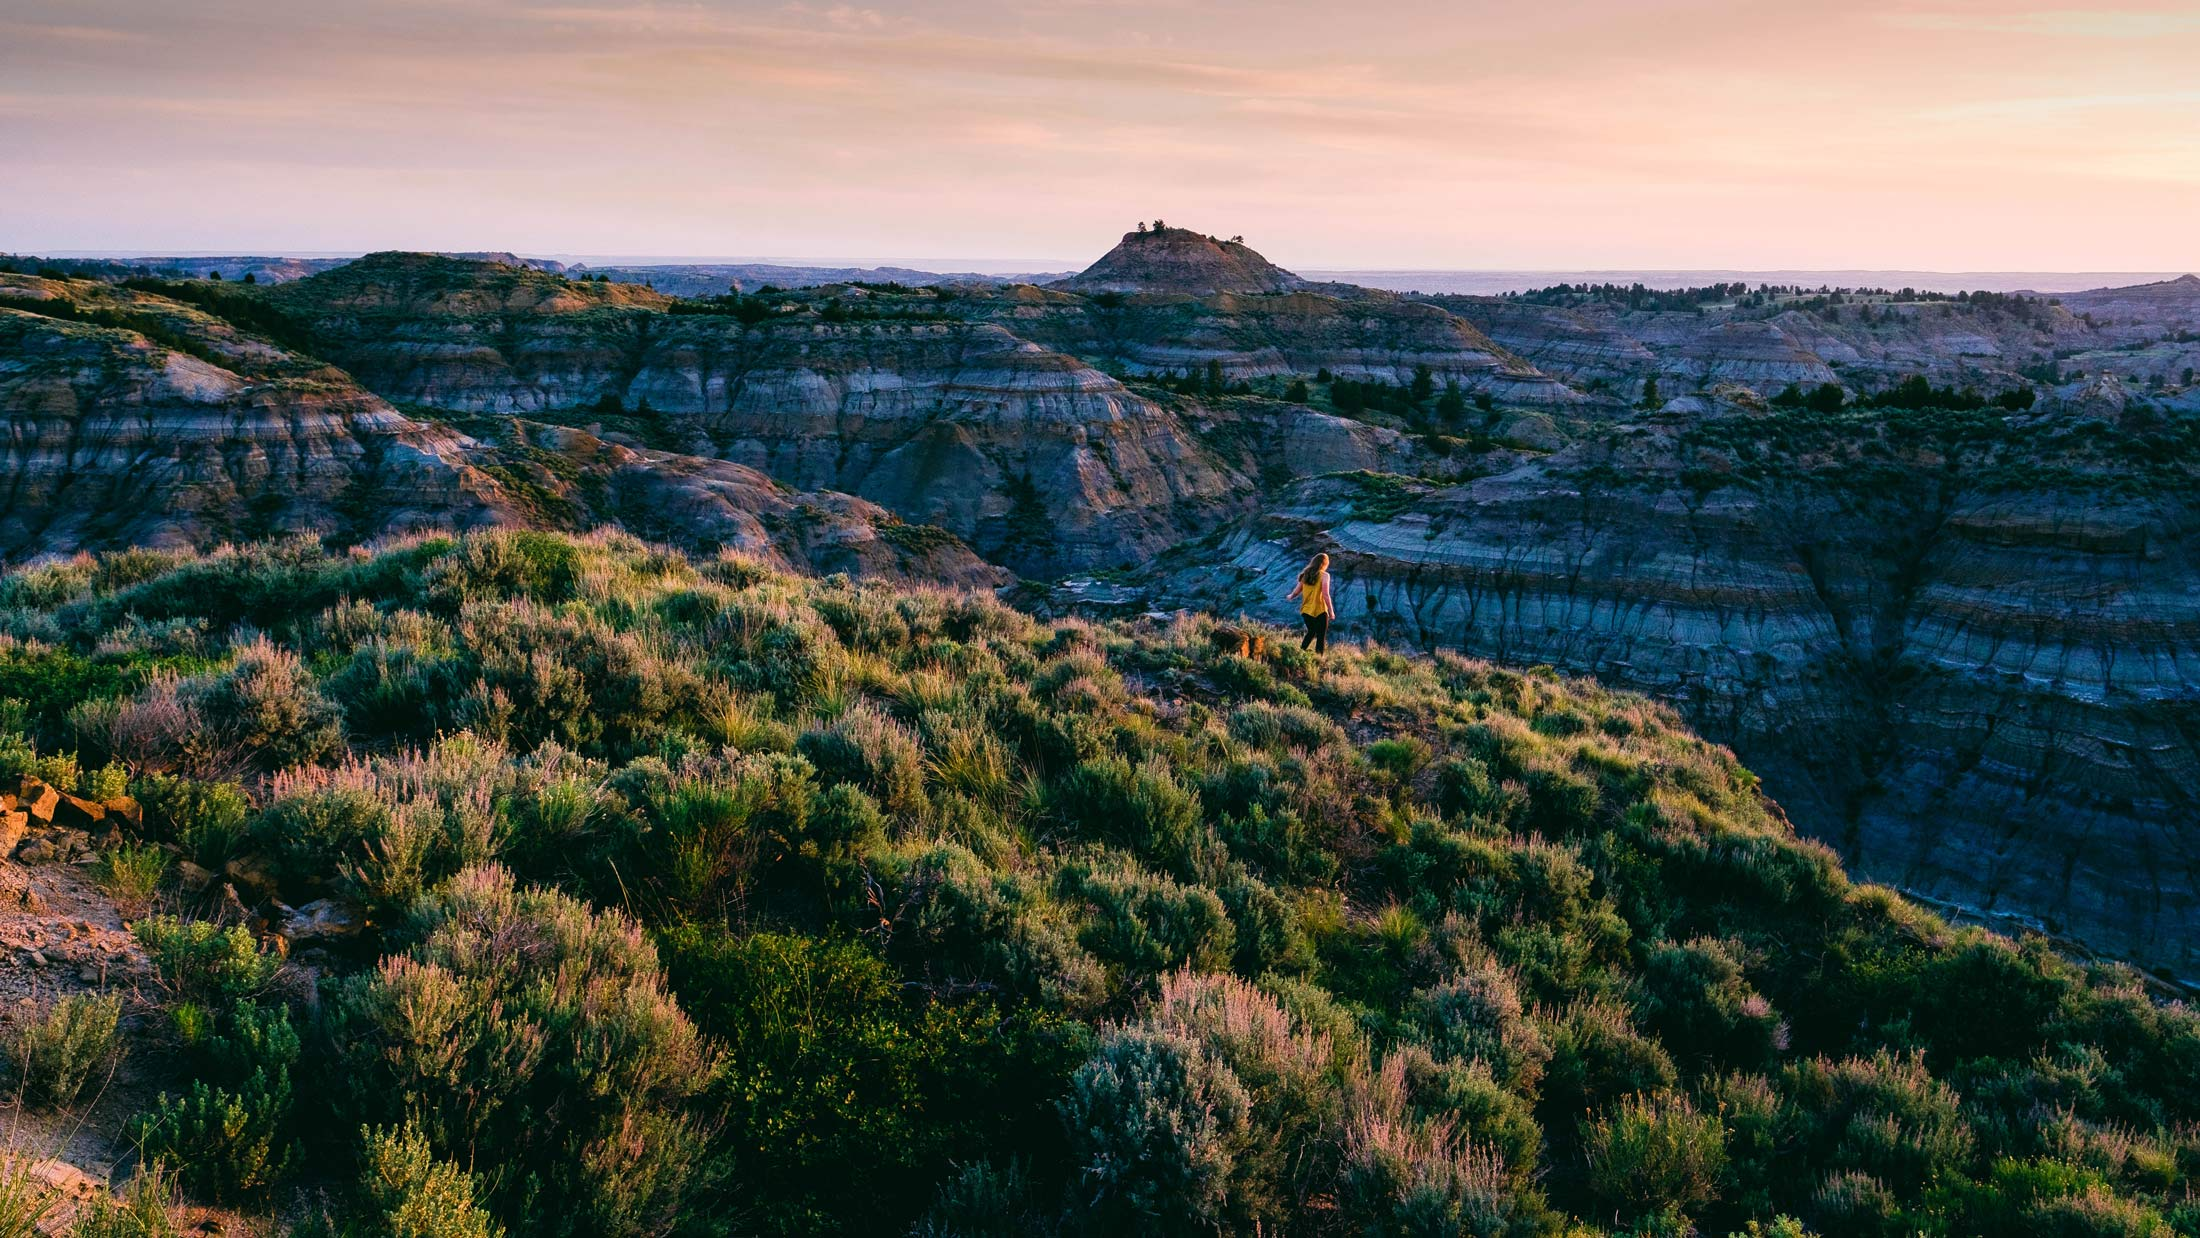 Southeast Montana's Big, Open Spaces are the Perfect Place for an Escape: Part II